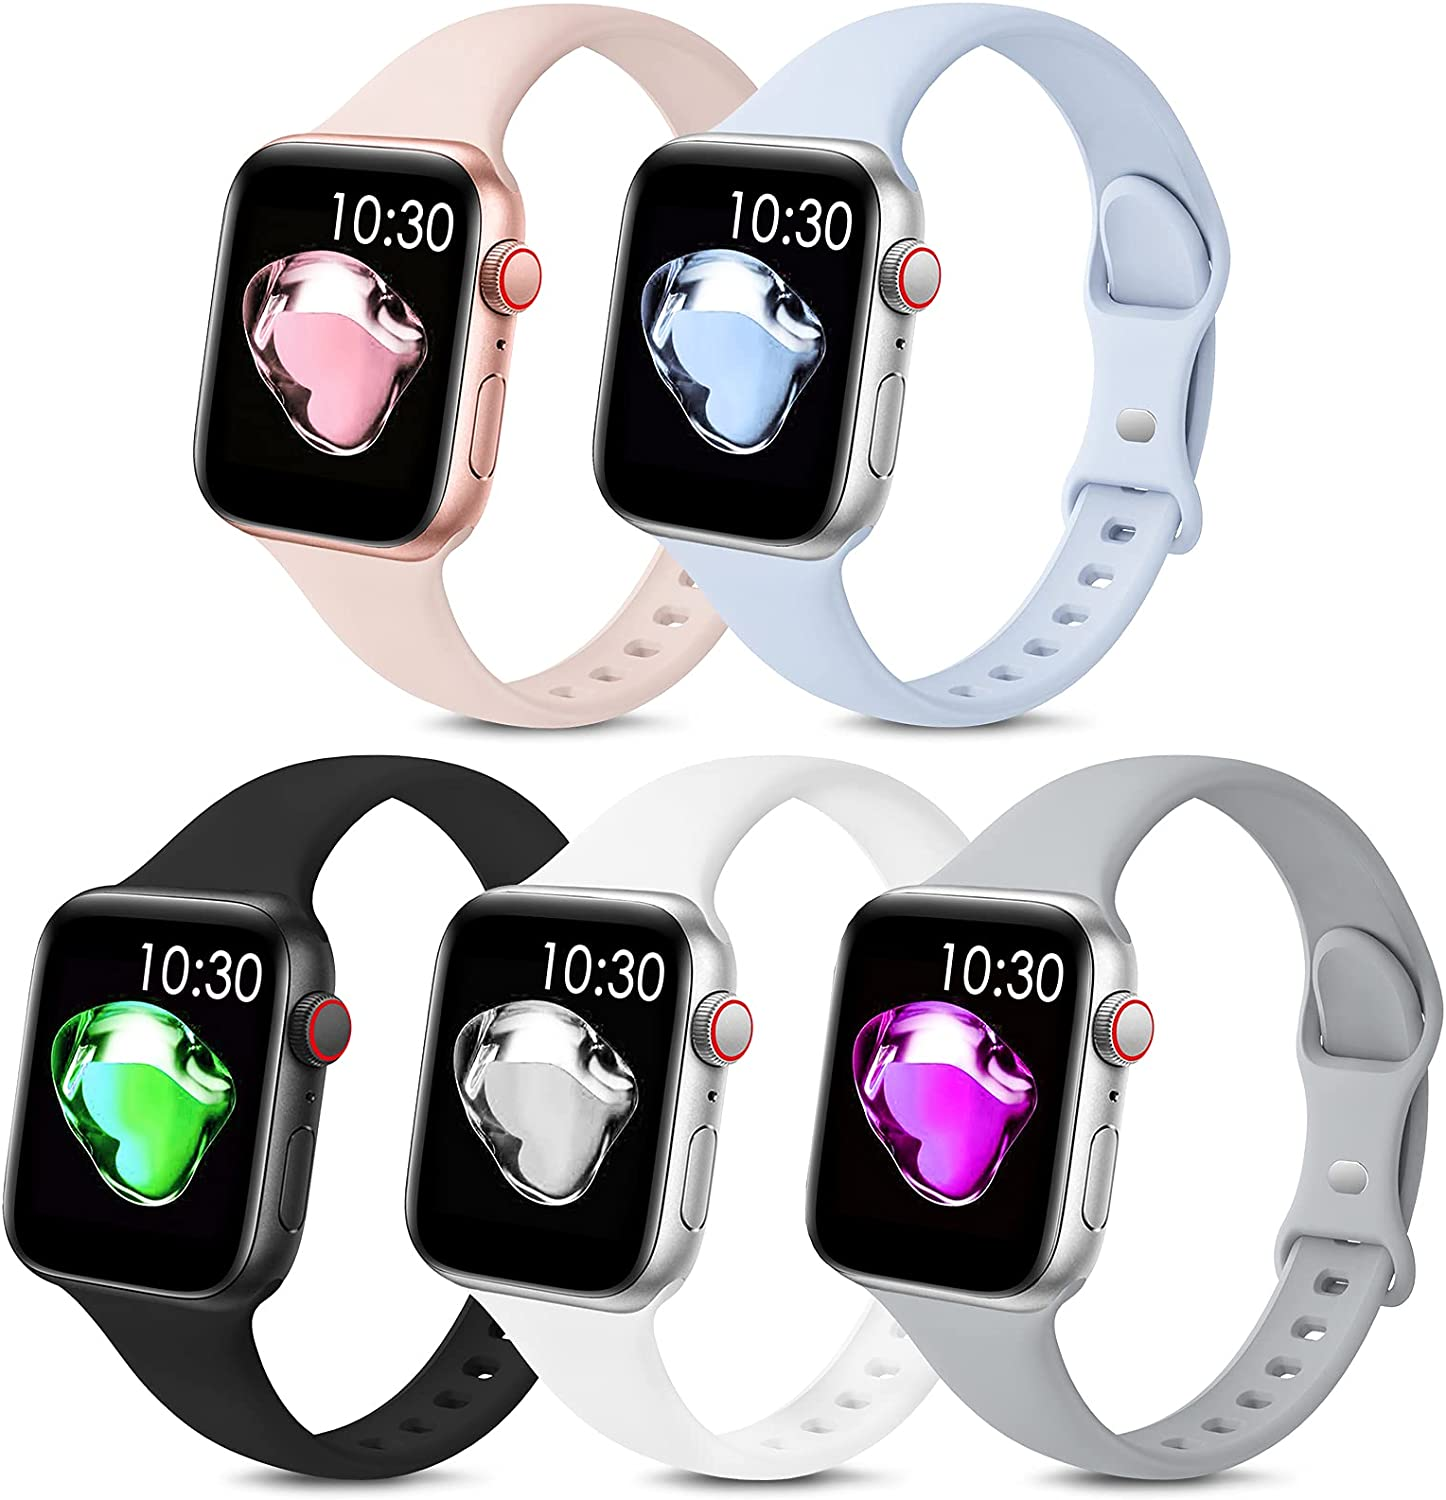 5 Pack Sport Slim Bands Compatible with Apple Watch Bands 38mm 40mm 42mm 44mm Women Men,Thin Silicone Soft Replacement Strap Wristband for iWatch Series 6 5 4 3 2 1 SE(38MM/40MM,Color6)